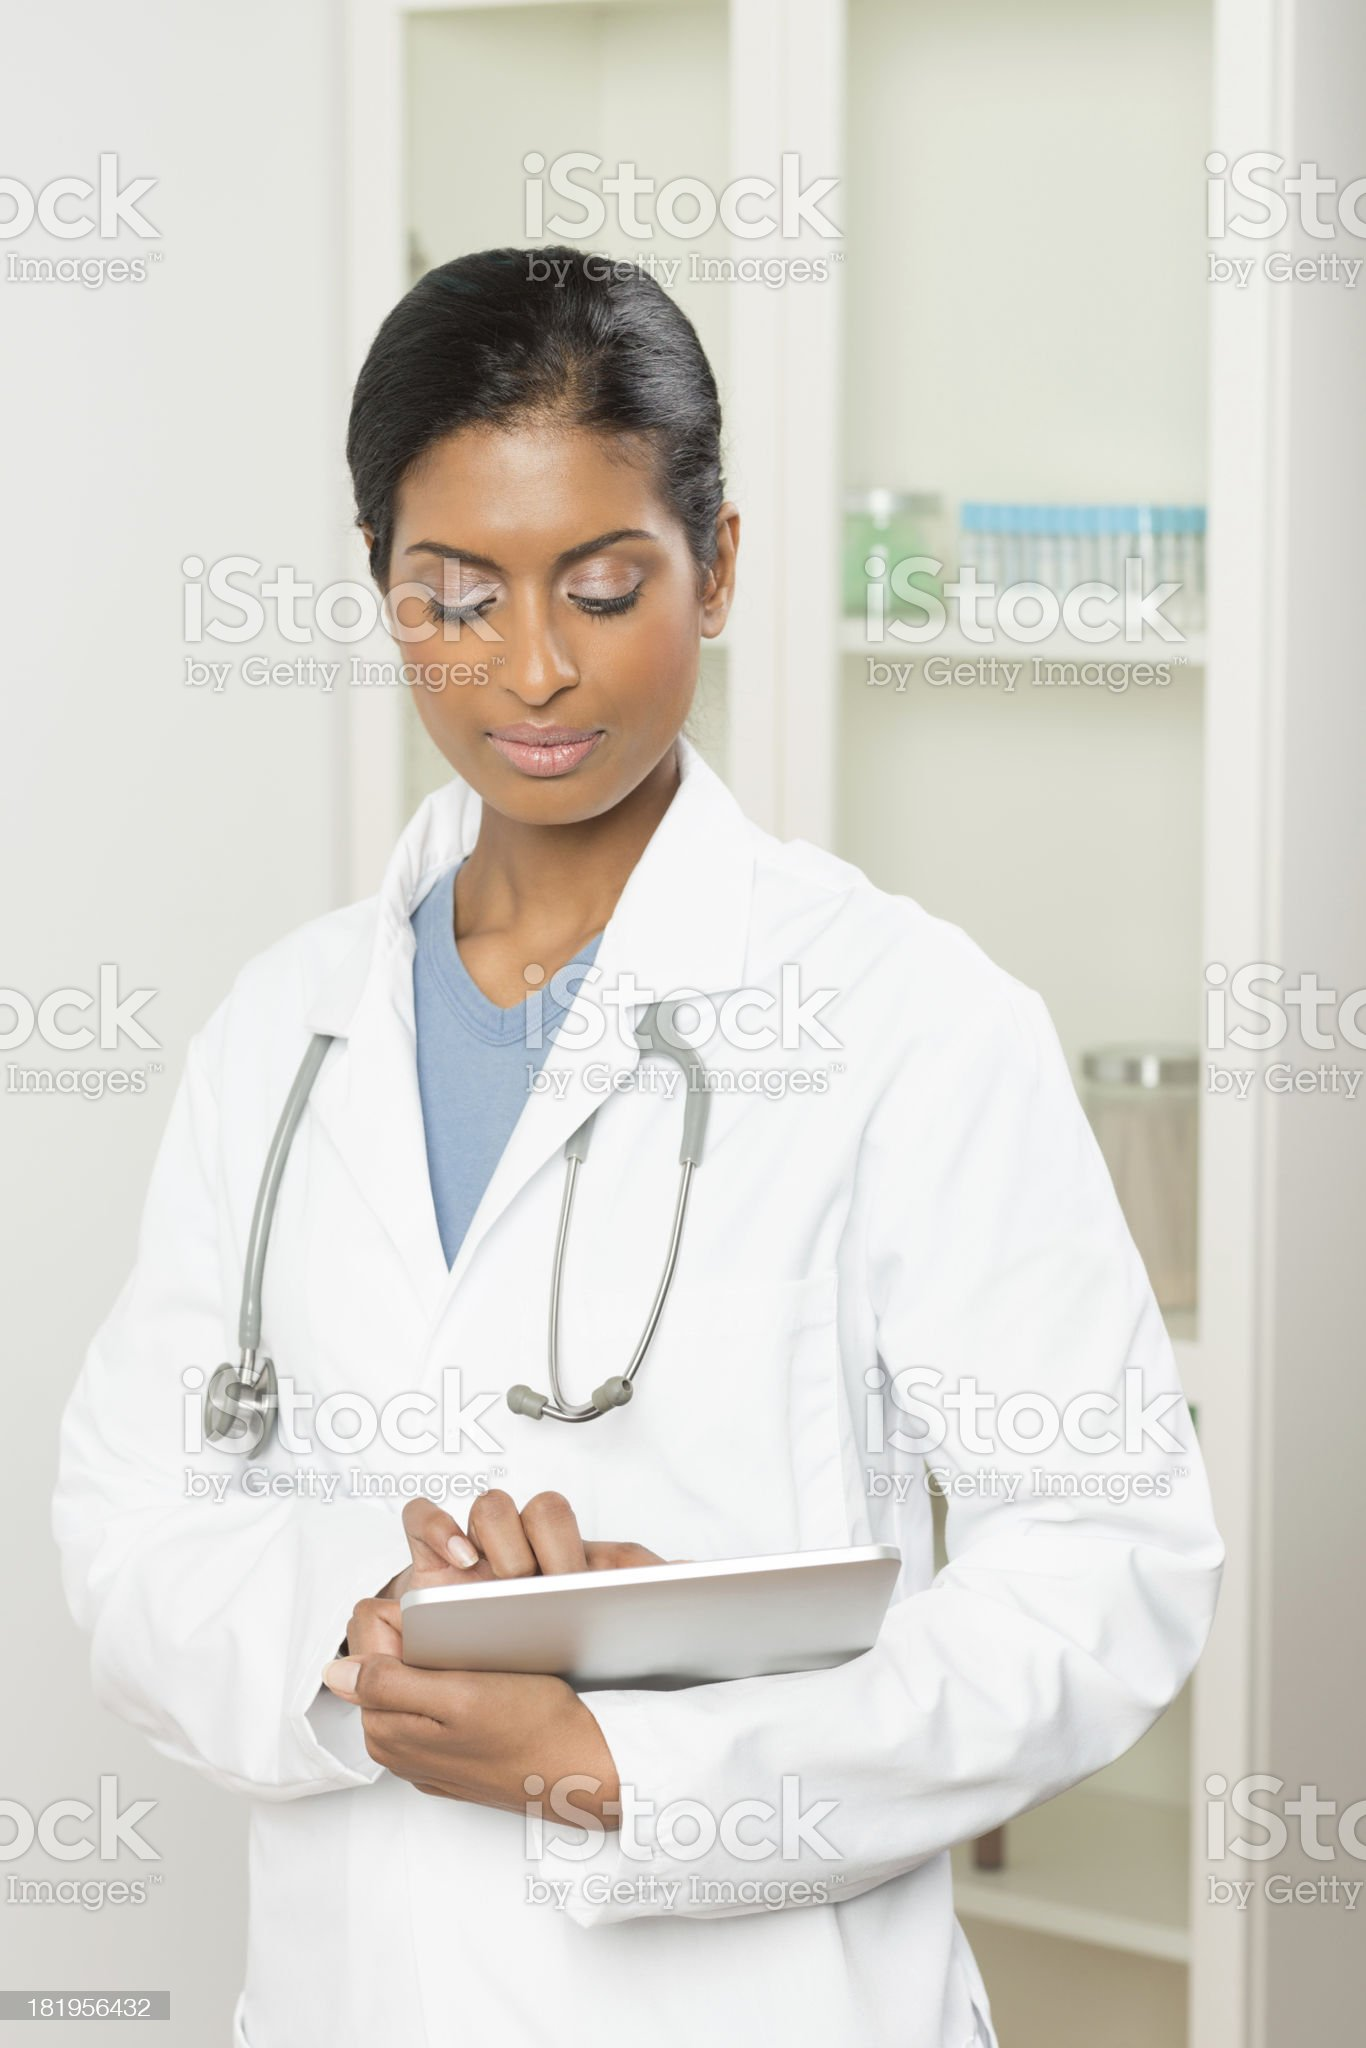 Female Doctor Holding Digital Tablet royalty-free stock photo